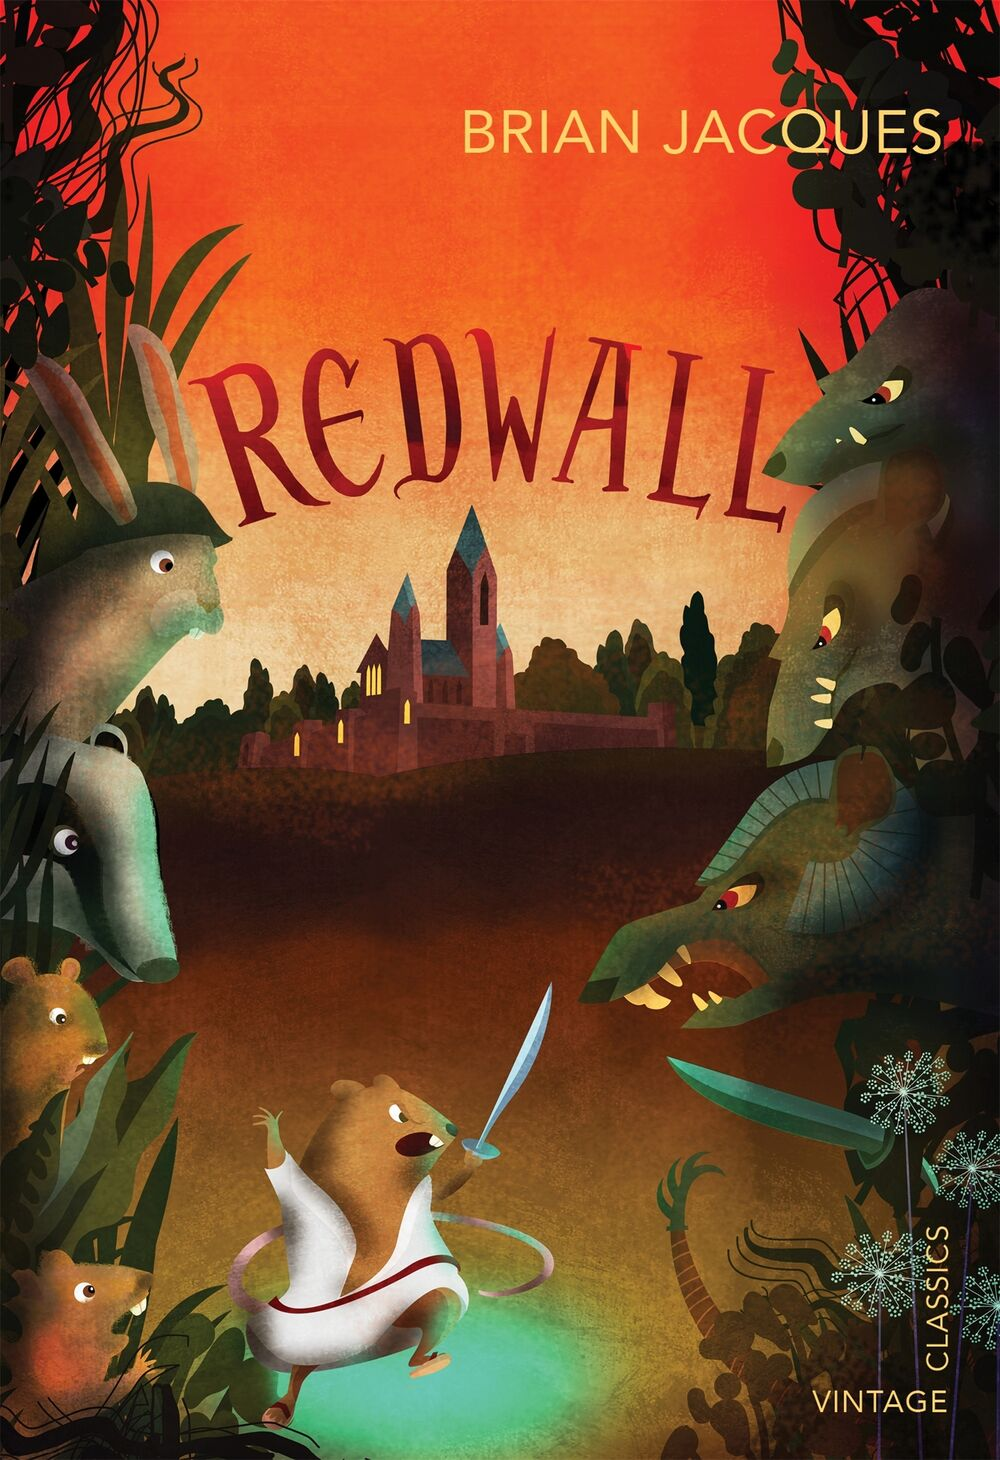 a review of the redwall series by brian jacques Redwall by brian jacques - review  this is the first book in a series of 23, so if you like this book there are loads more for you to read  join the site and send us your review topics.